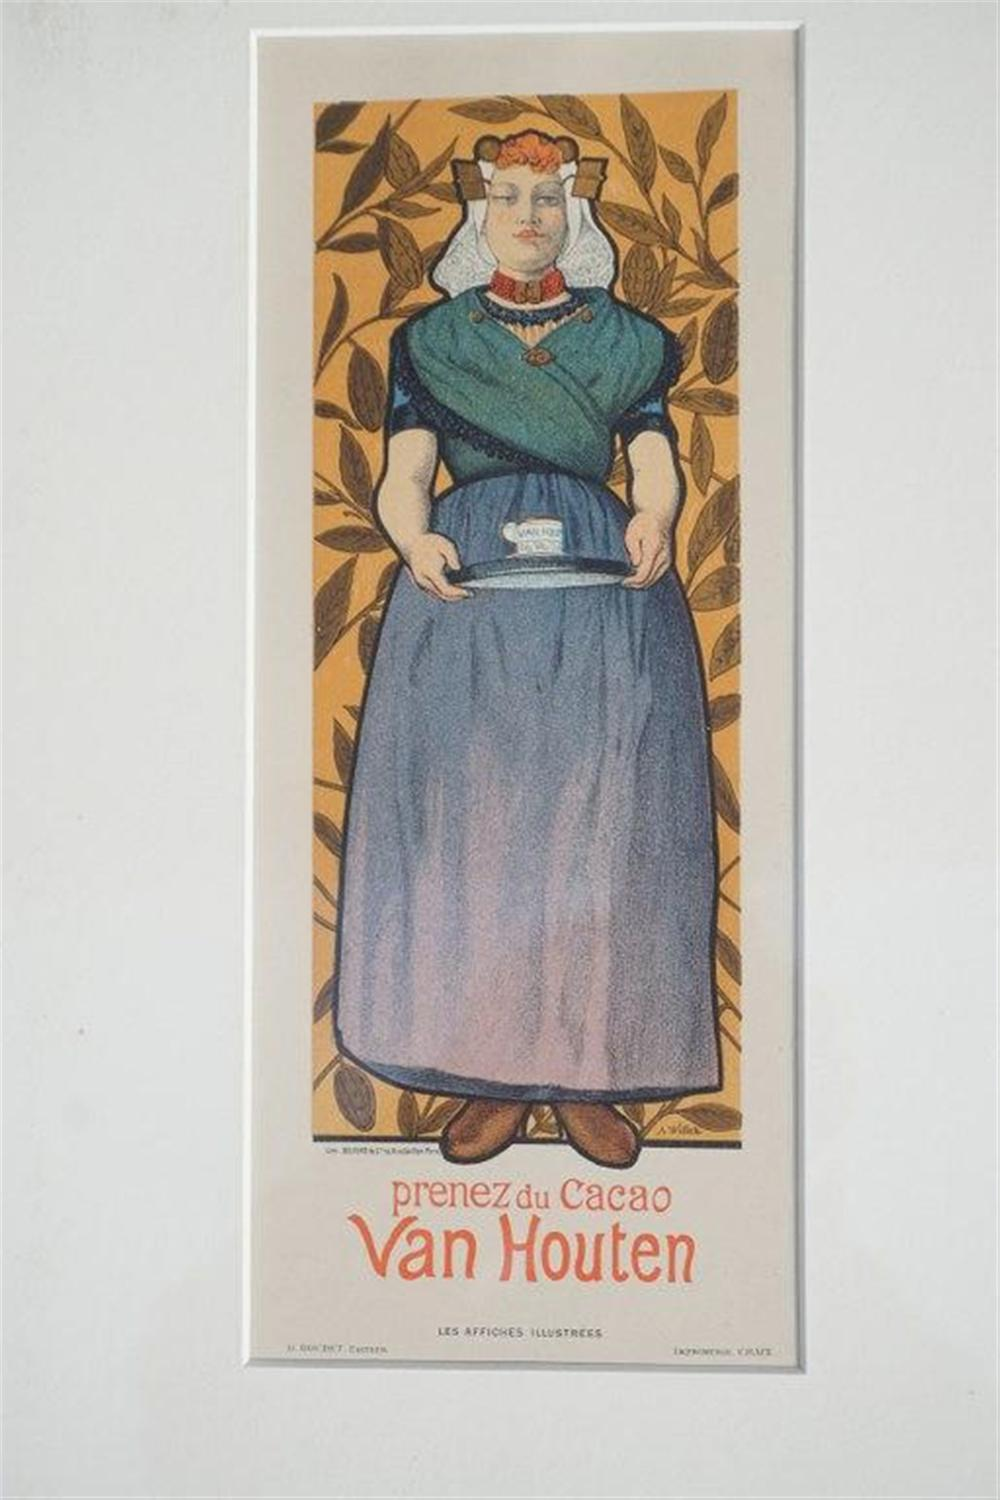 "1896 A WILLETTE VAN HOUTON STONE LITHO POSTER, PARIS, MEASURES 12"" X 5 1/2"" AS SHOWN, EXCELLENT CONDITION, SHRINK WRAPPED AND MATTED, FROM RETIRED DEALERS COLLECTION."